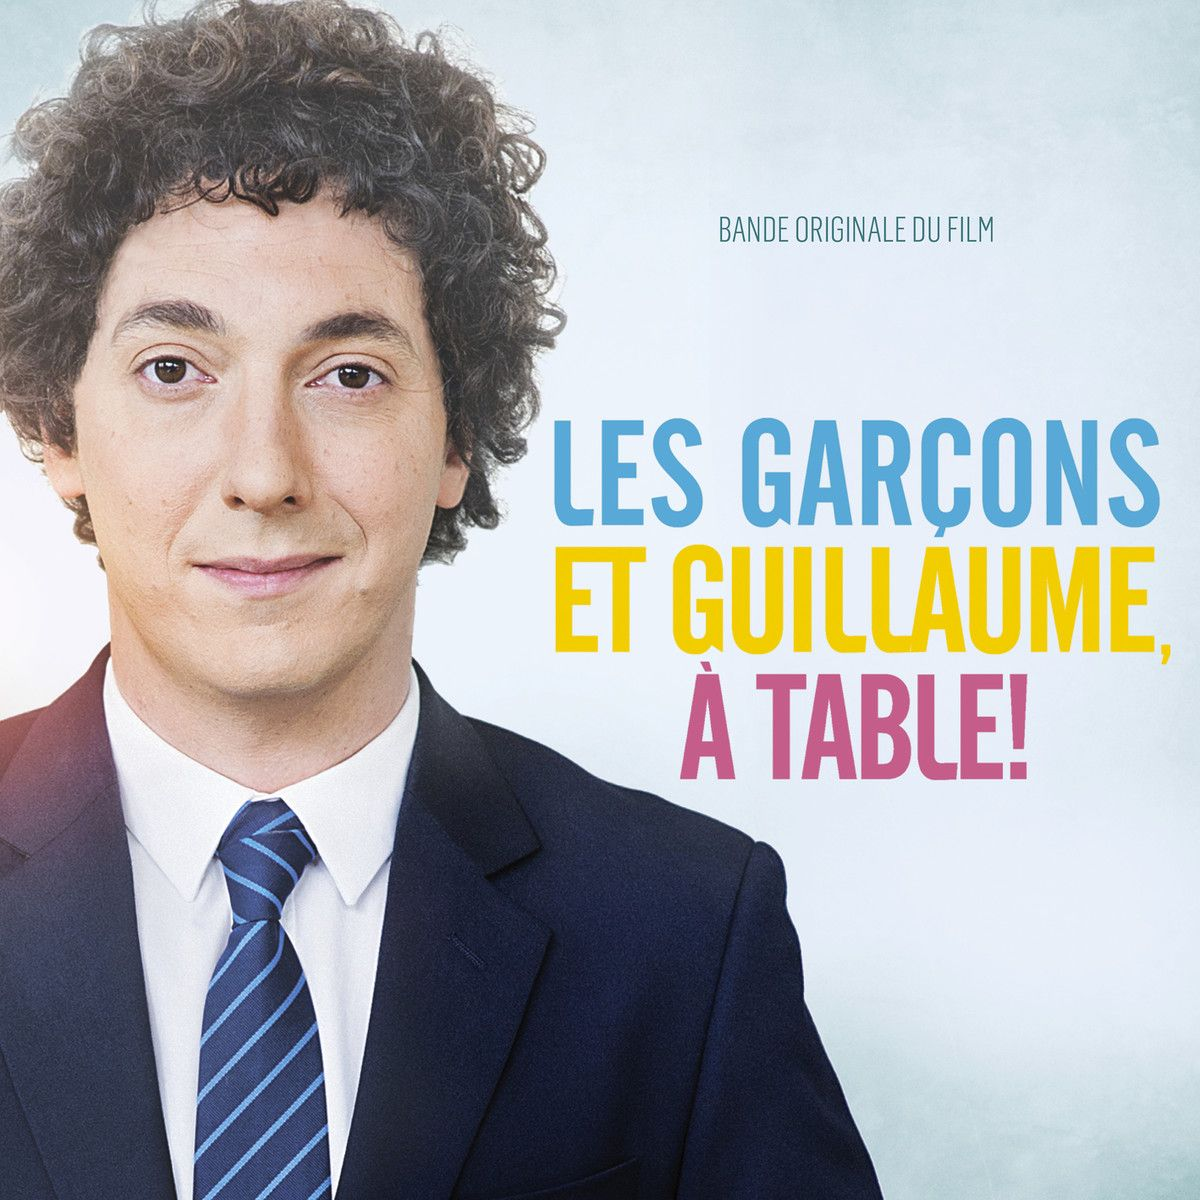 Les gar ons et guillaume table ost various artists - Guillaume les garcons a table streaming ...